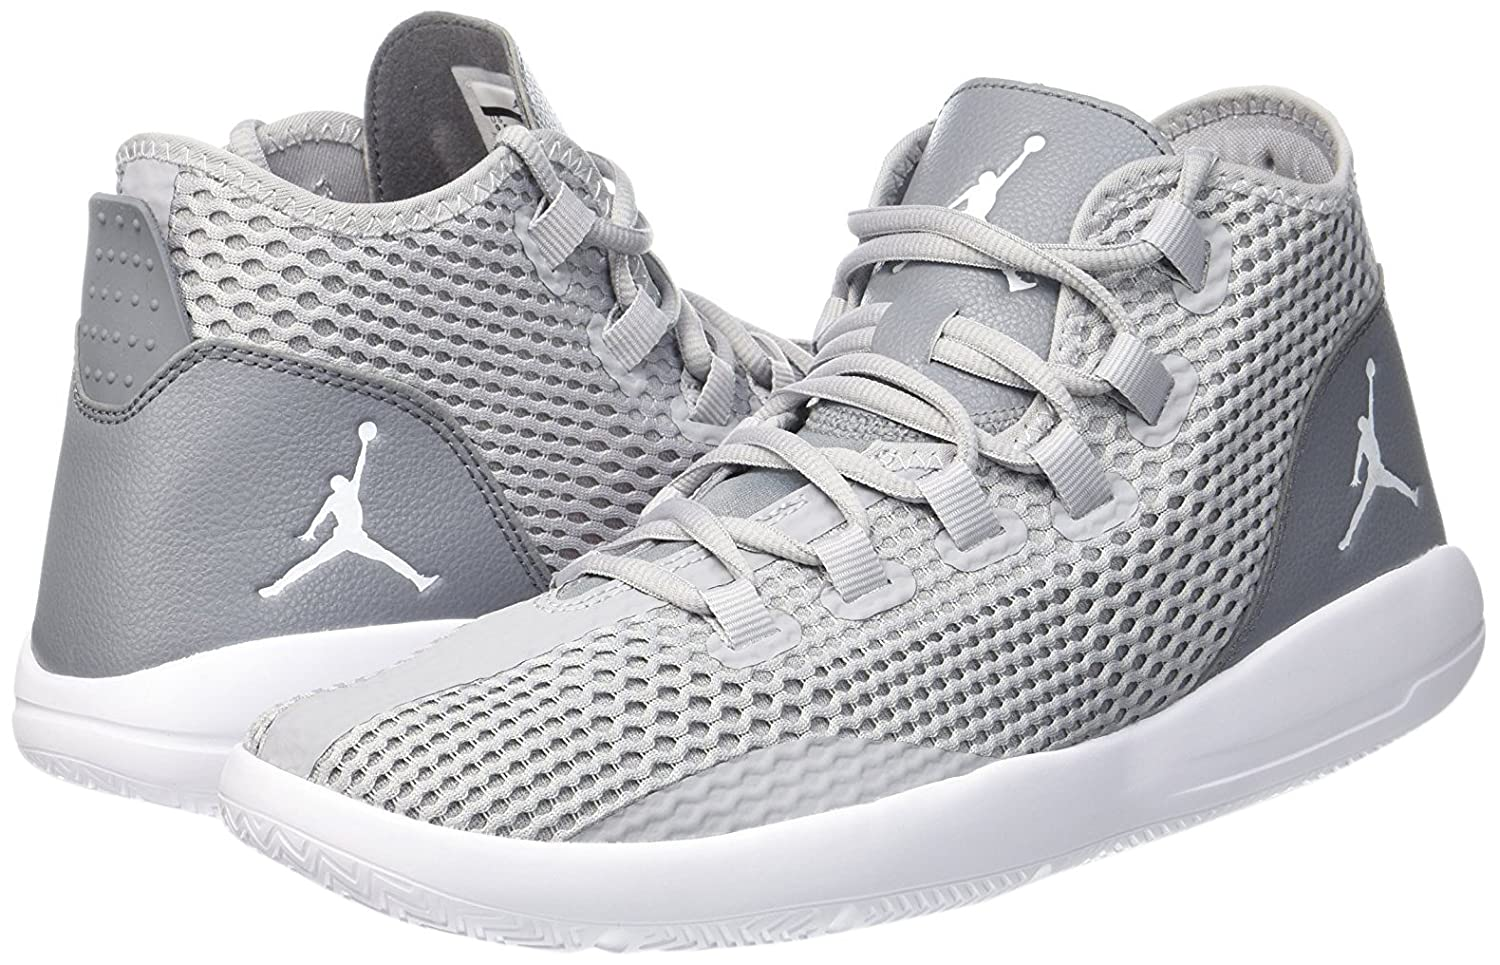 sports shoes f7b61 c5a45 Amazon.com   Jordan REVEAL mens basketball-shoes 834064-003 9.5 - WOLF GREY WHITE-COOL  GREY-INFRARED 23   Basketball